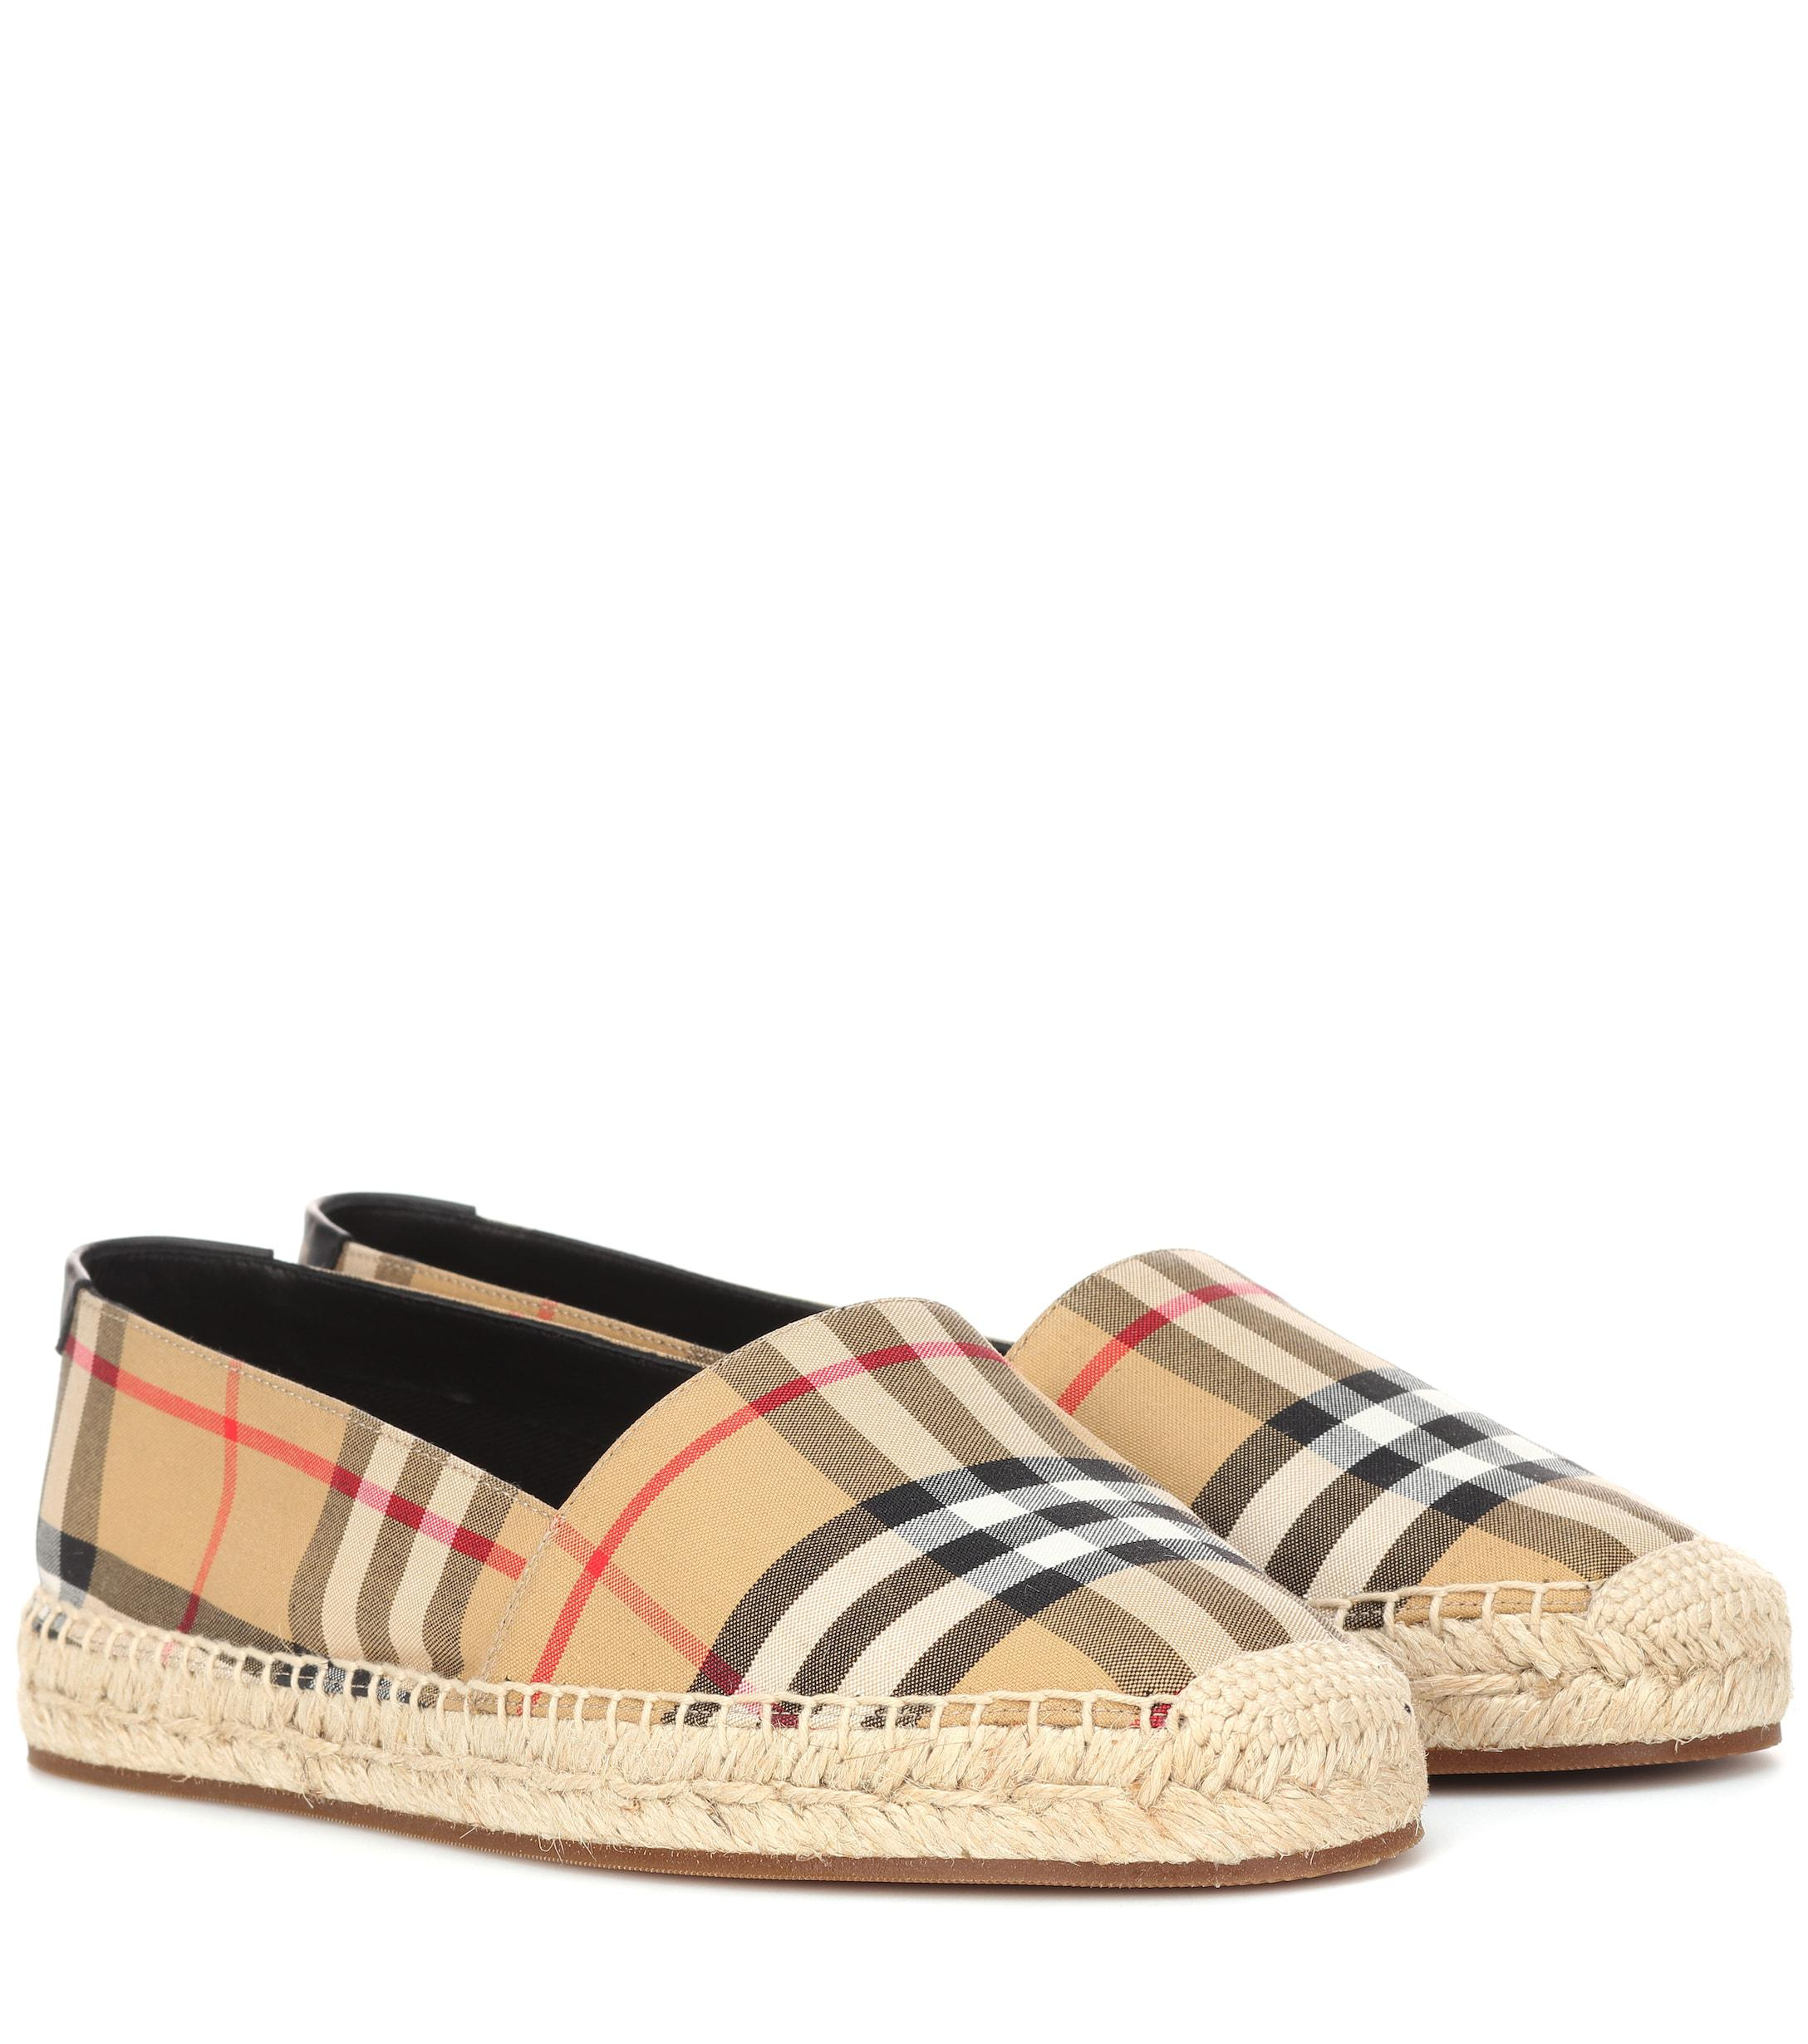 c4b9abe1690 Lyst - Burberry Check Canvas Espadrilles - Save 20%